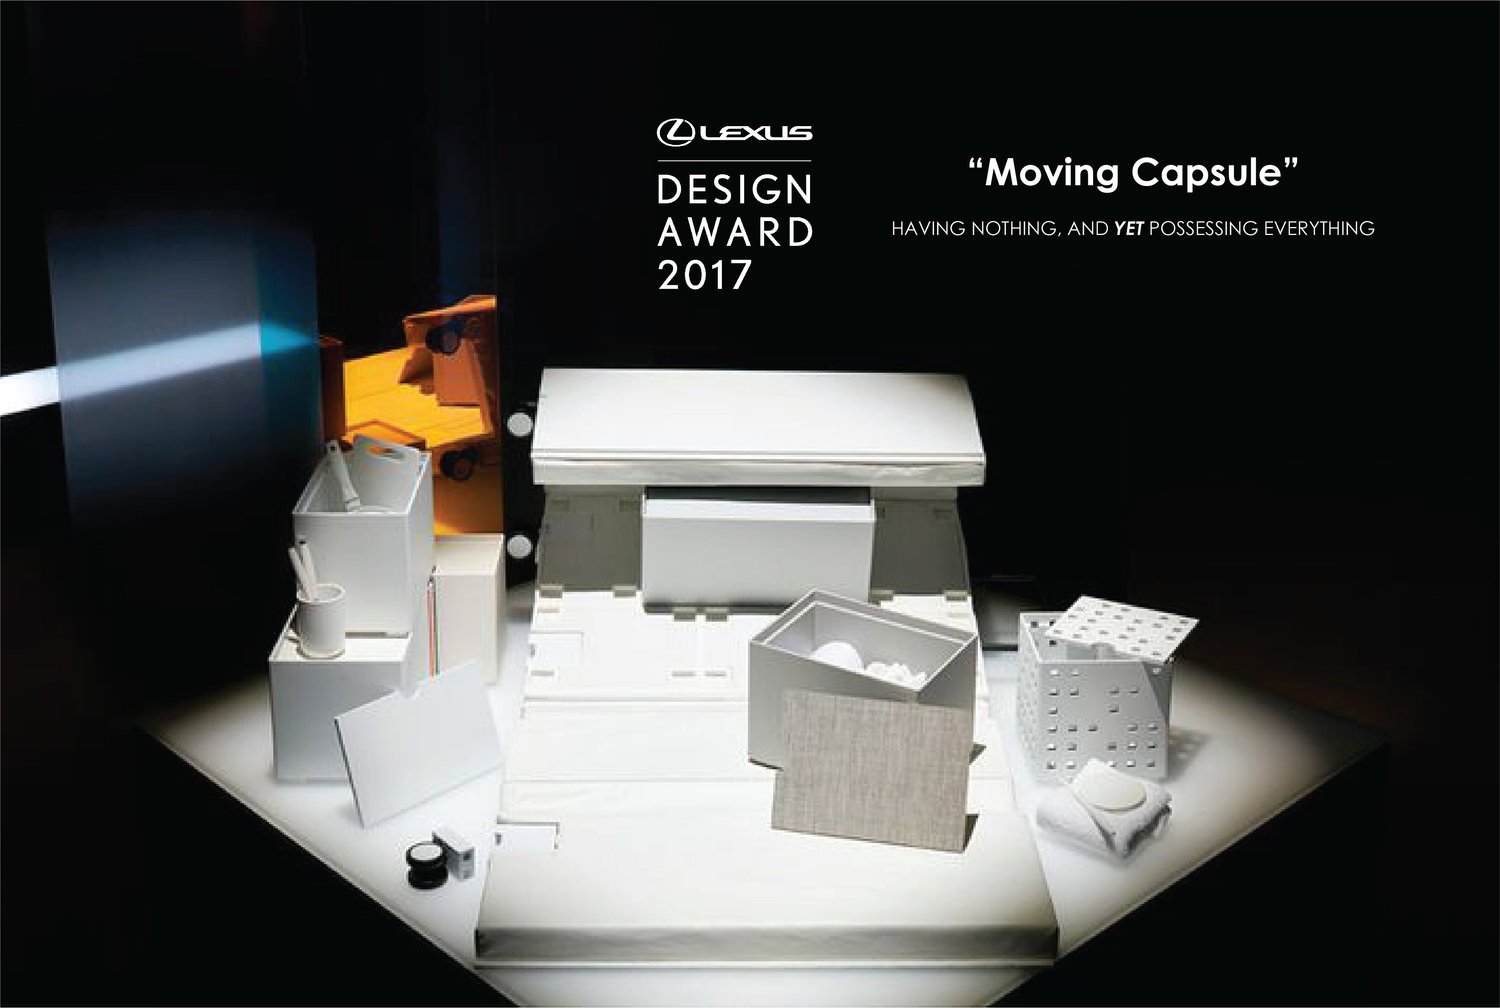 Moving Capsule Prototype & Design